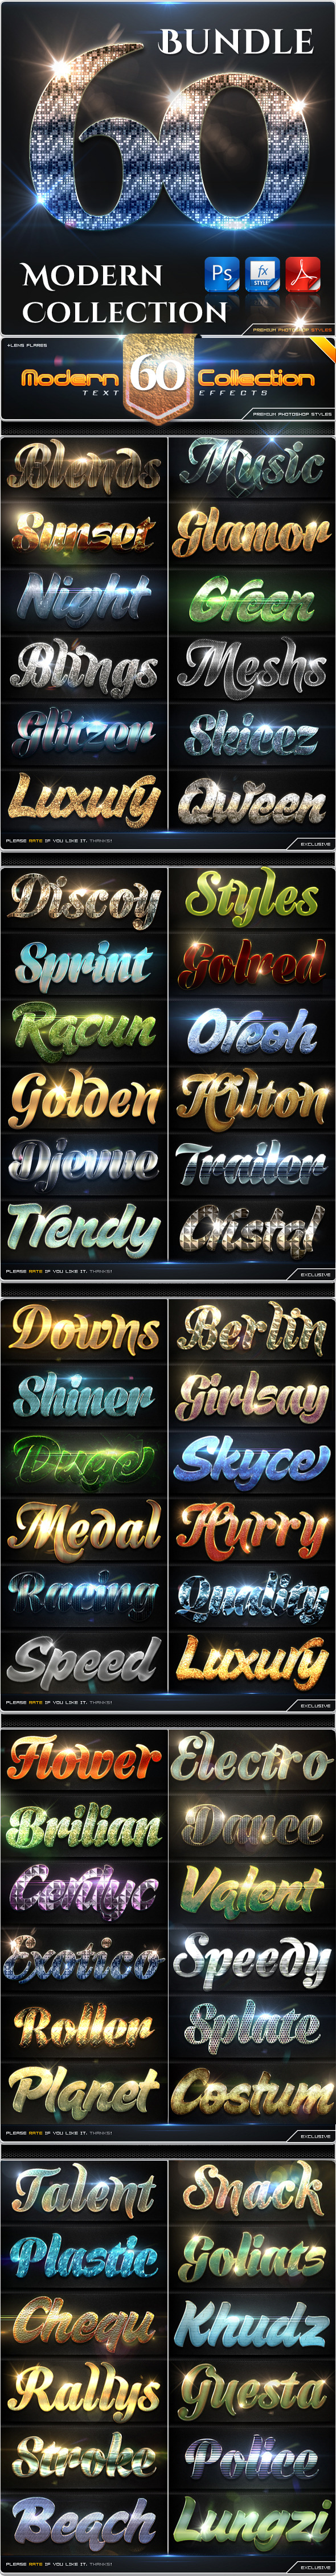 60 Modern Collection Text Effect Styles Bundle - Text Effects Styles